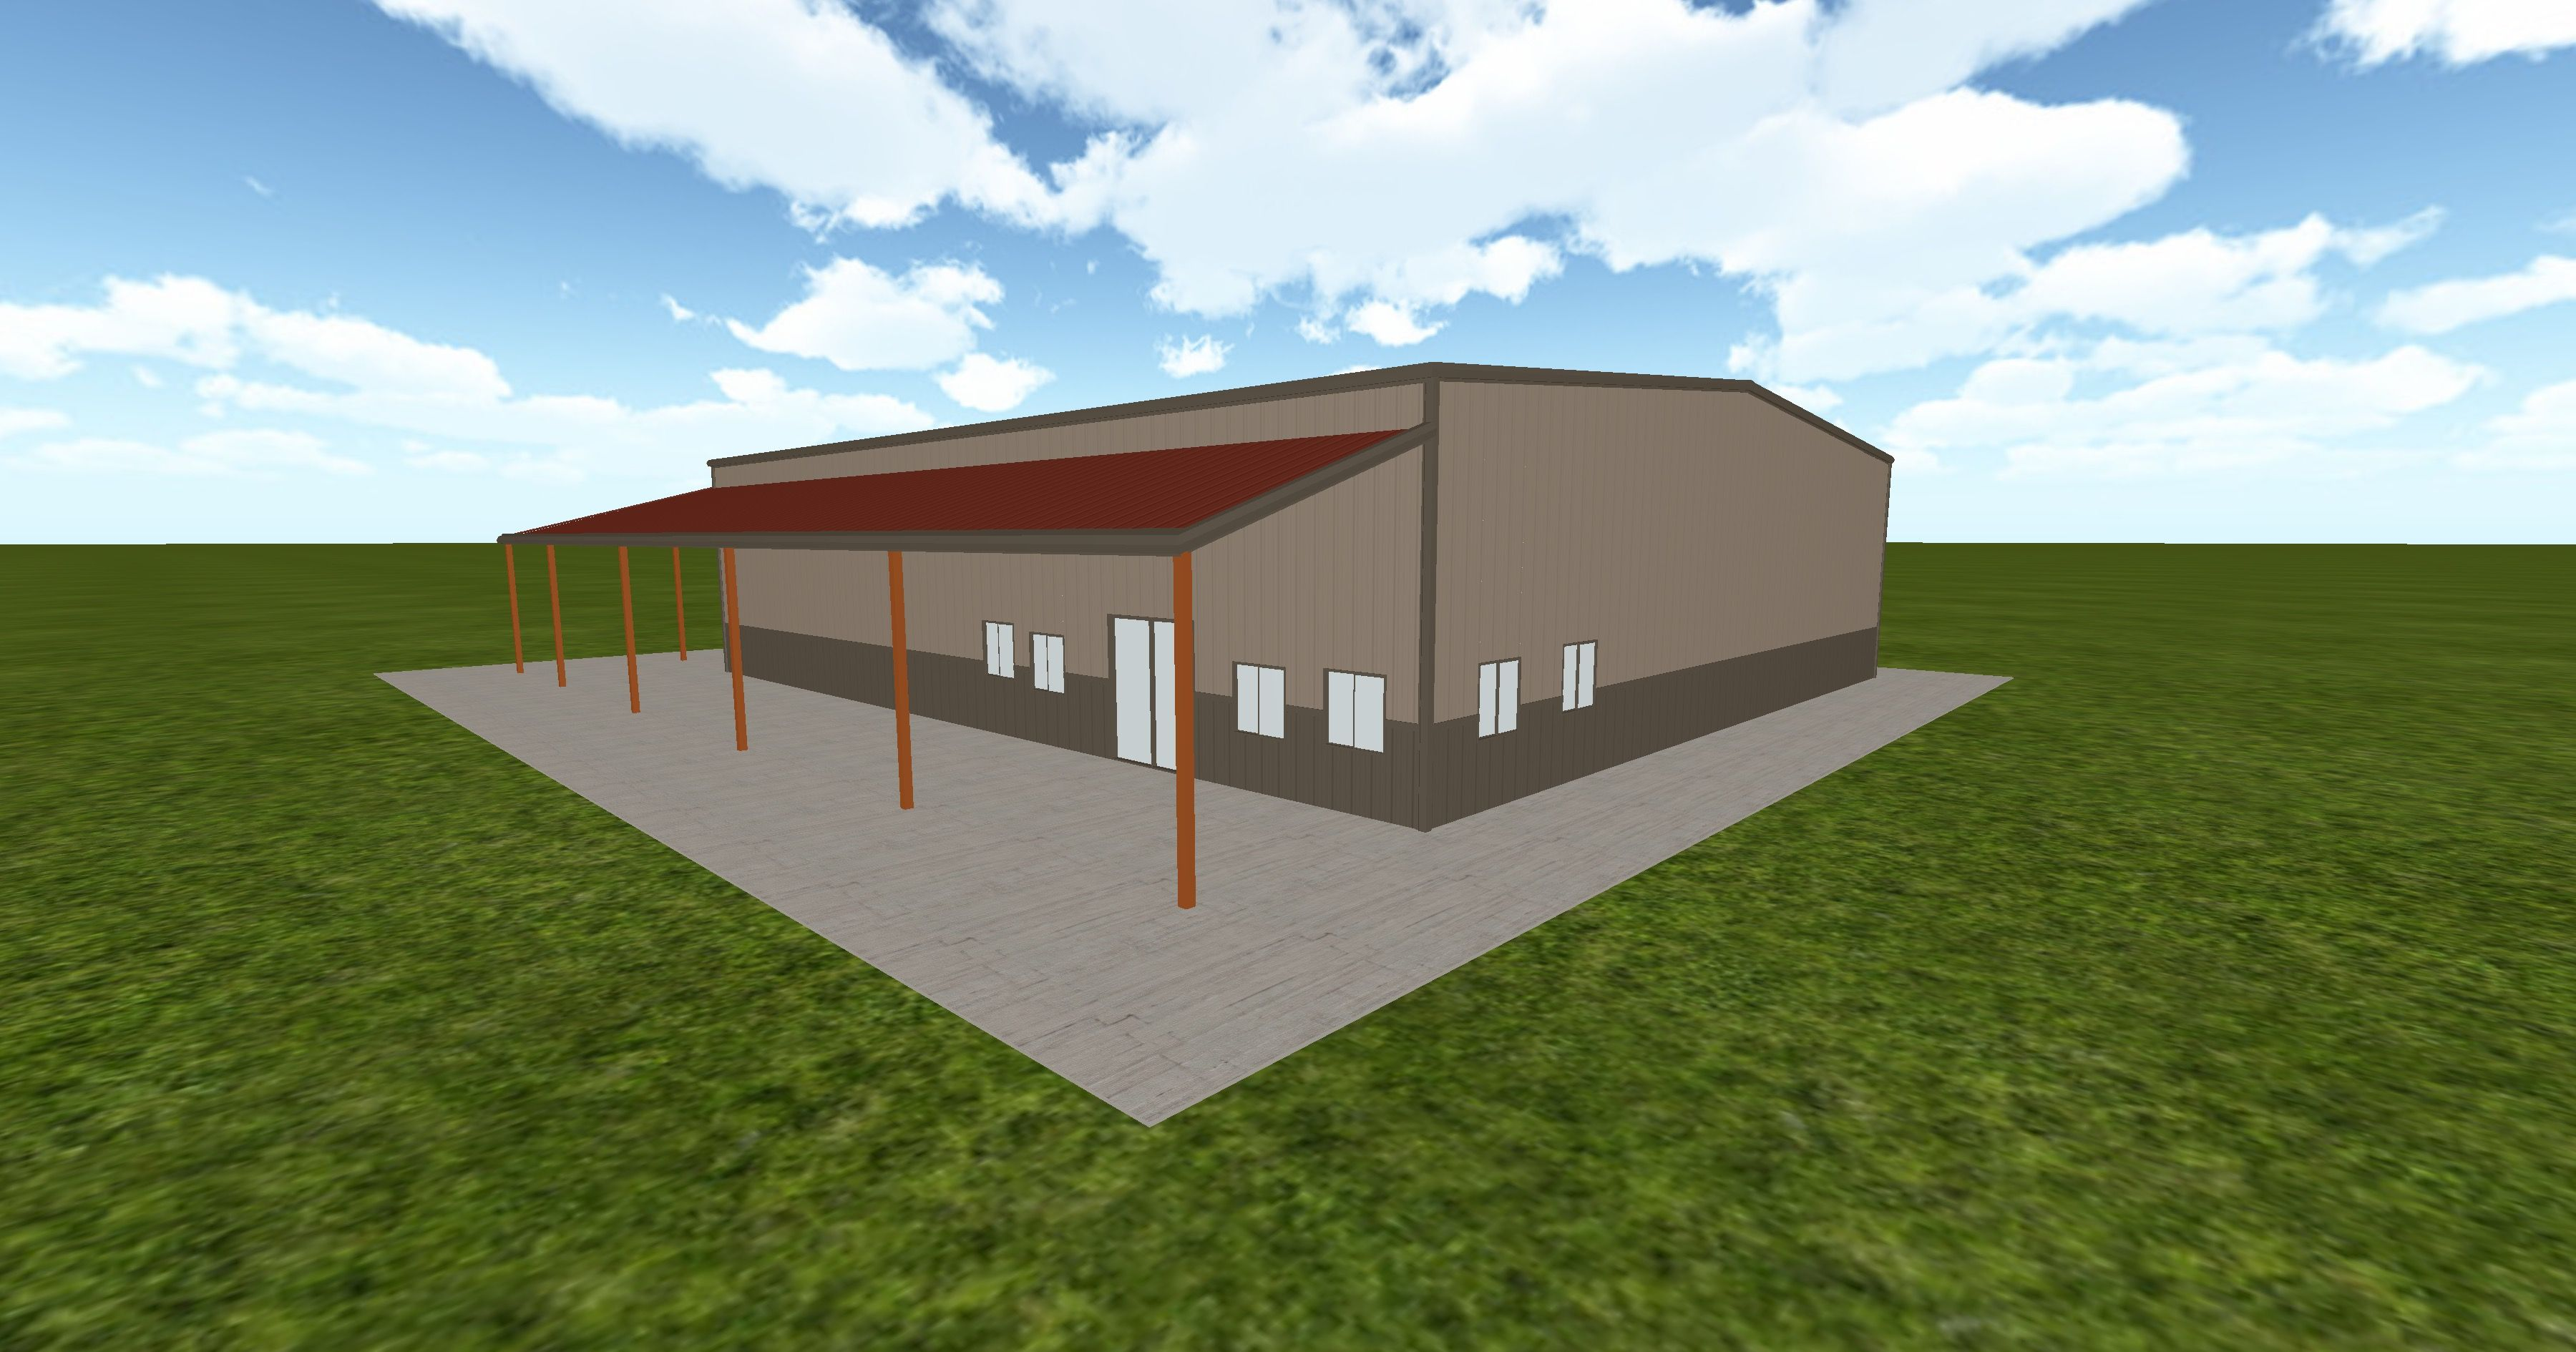 Check this cool 3D #marketing: http://ift.tt/1VGVrsO #virtual #construction #architecture